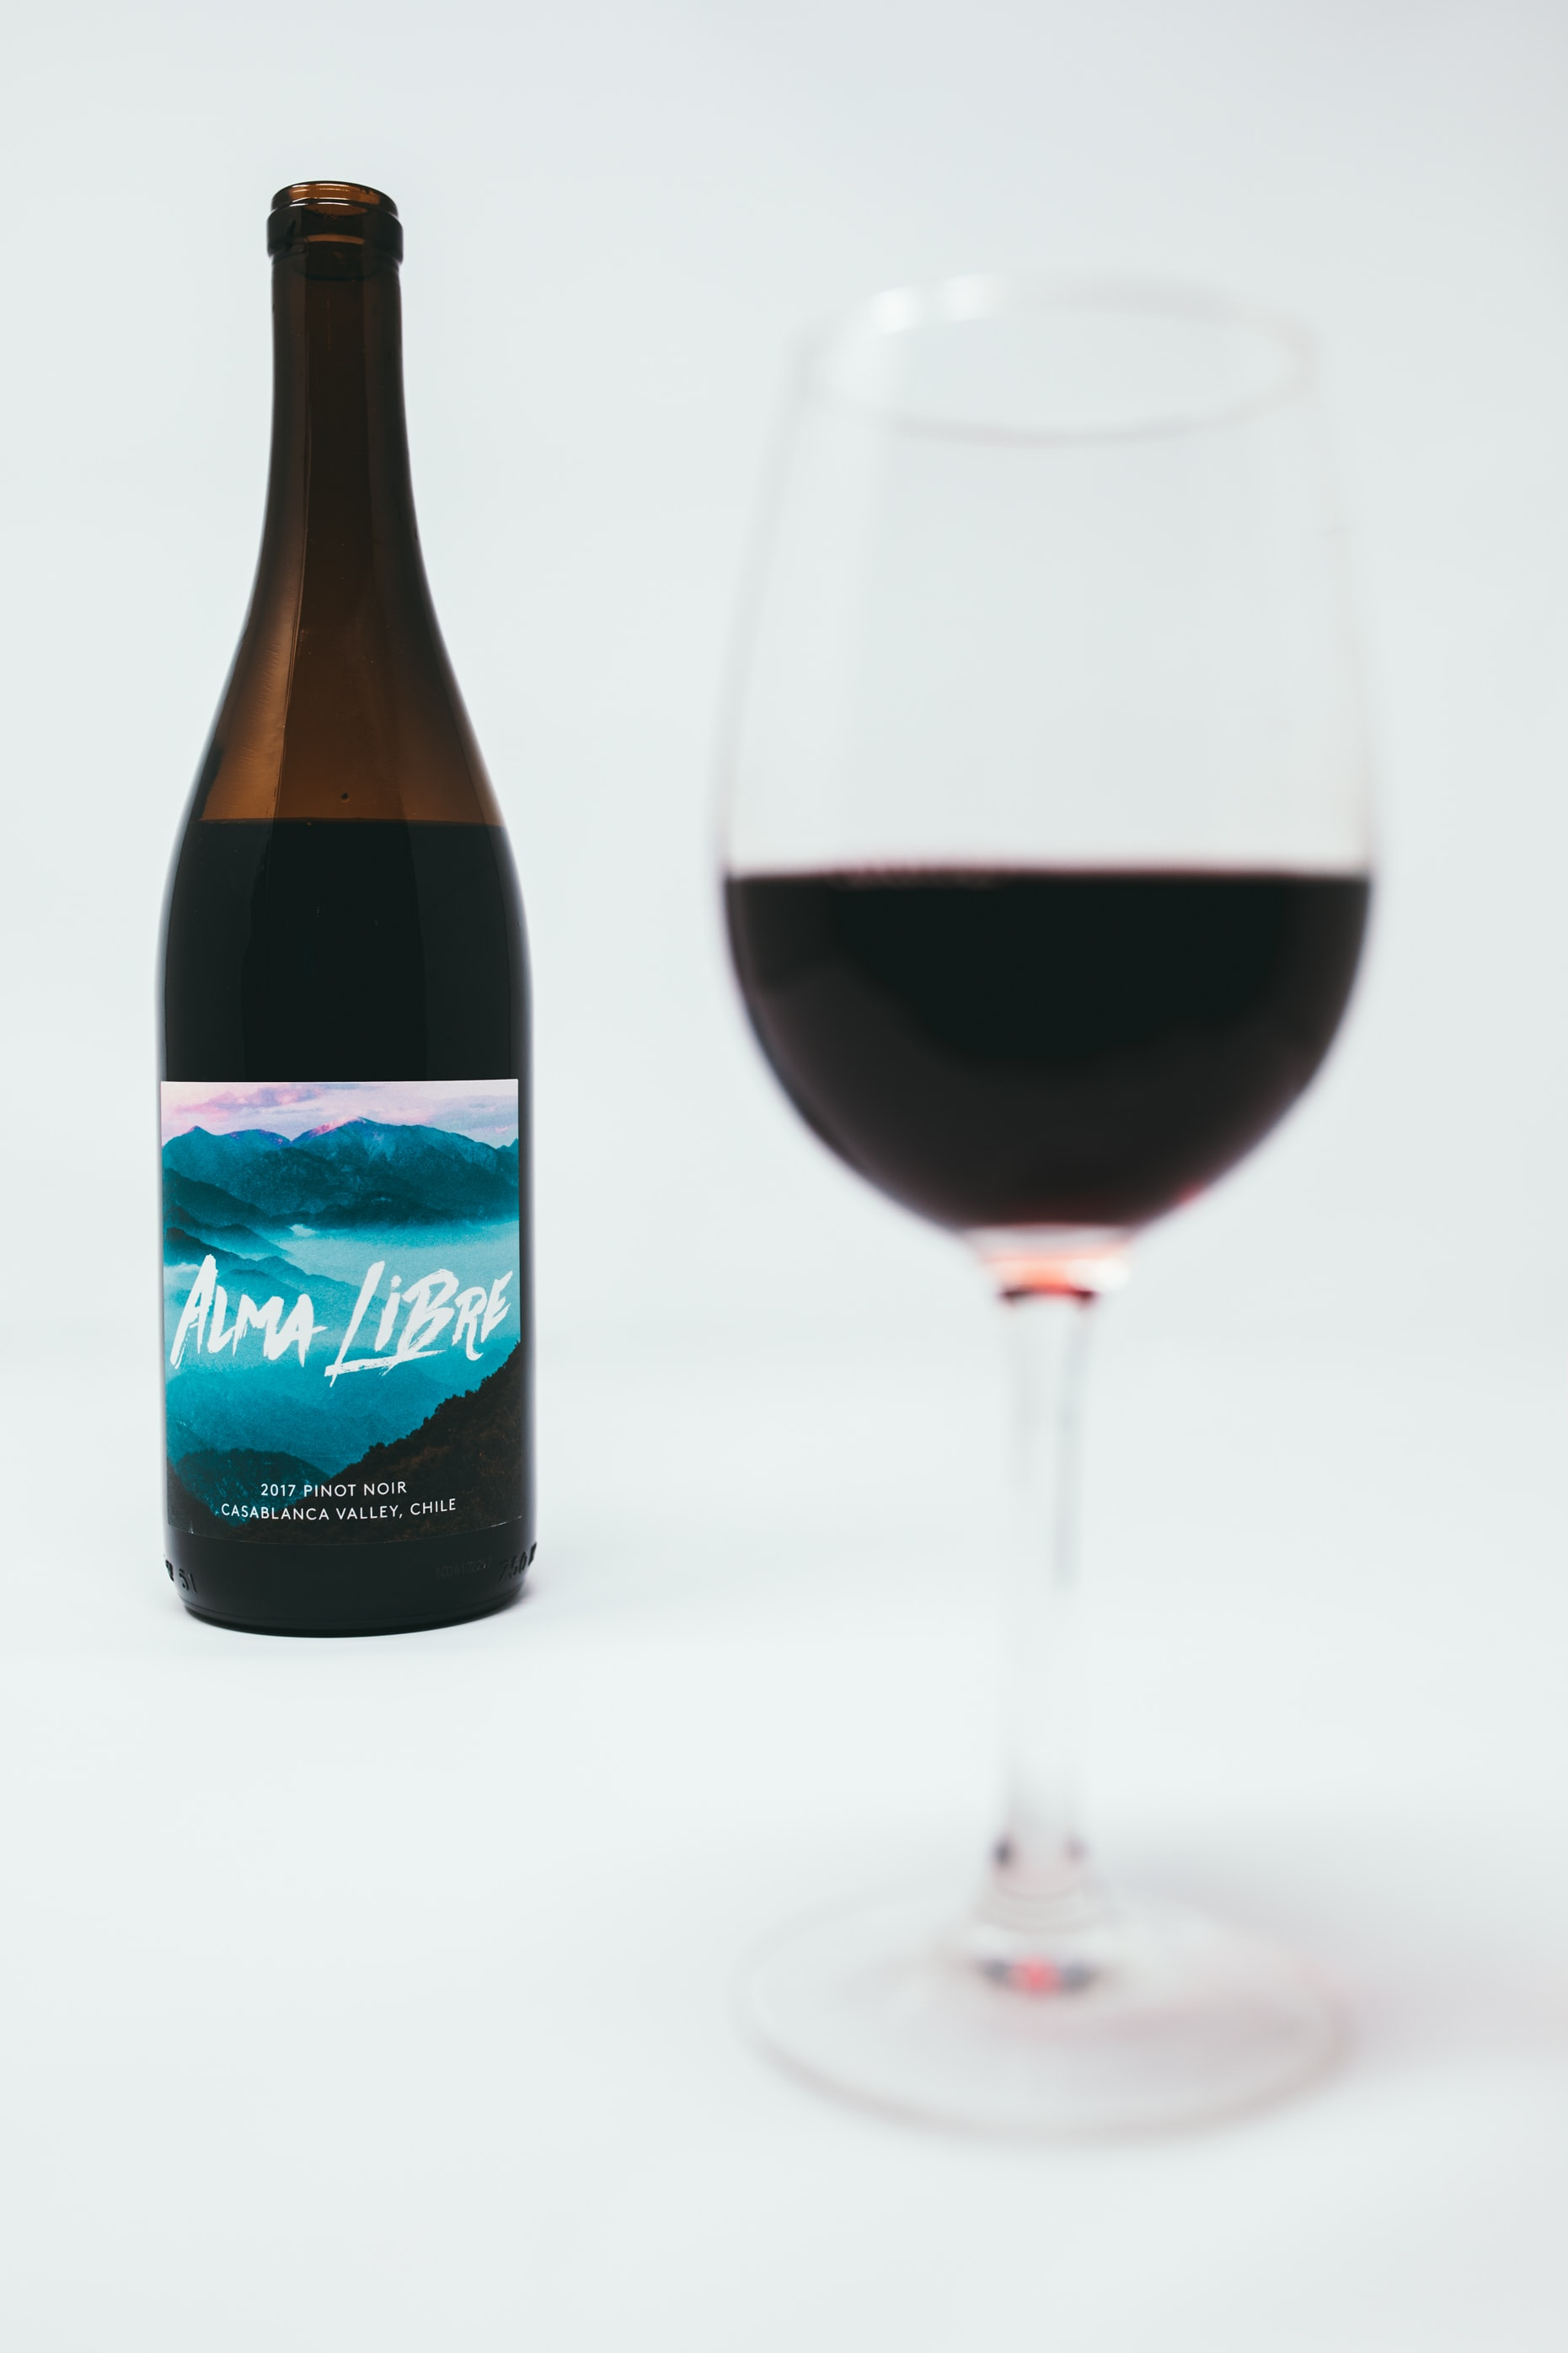 Alma Libre wine bottle near wine glass